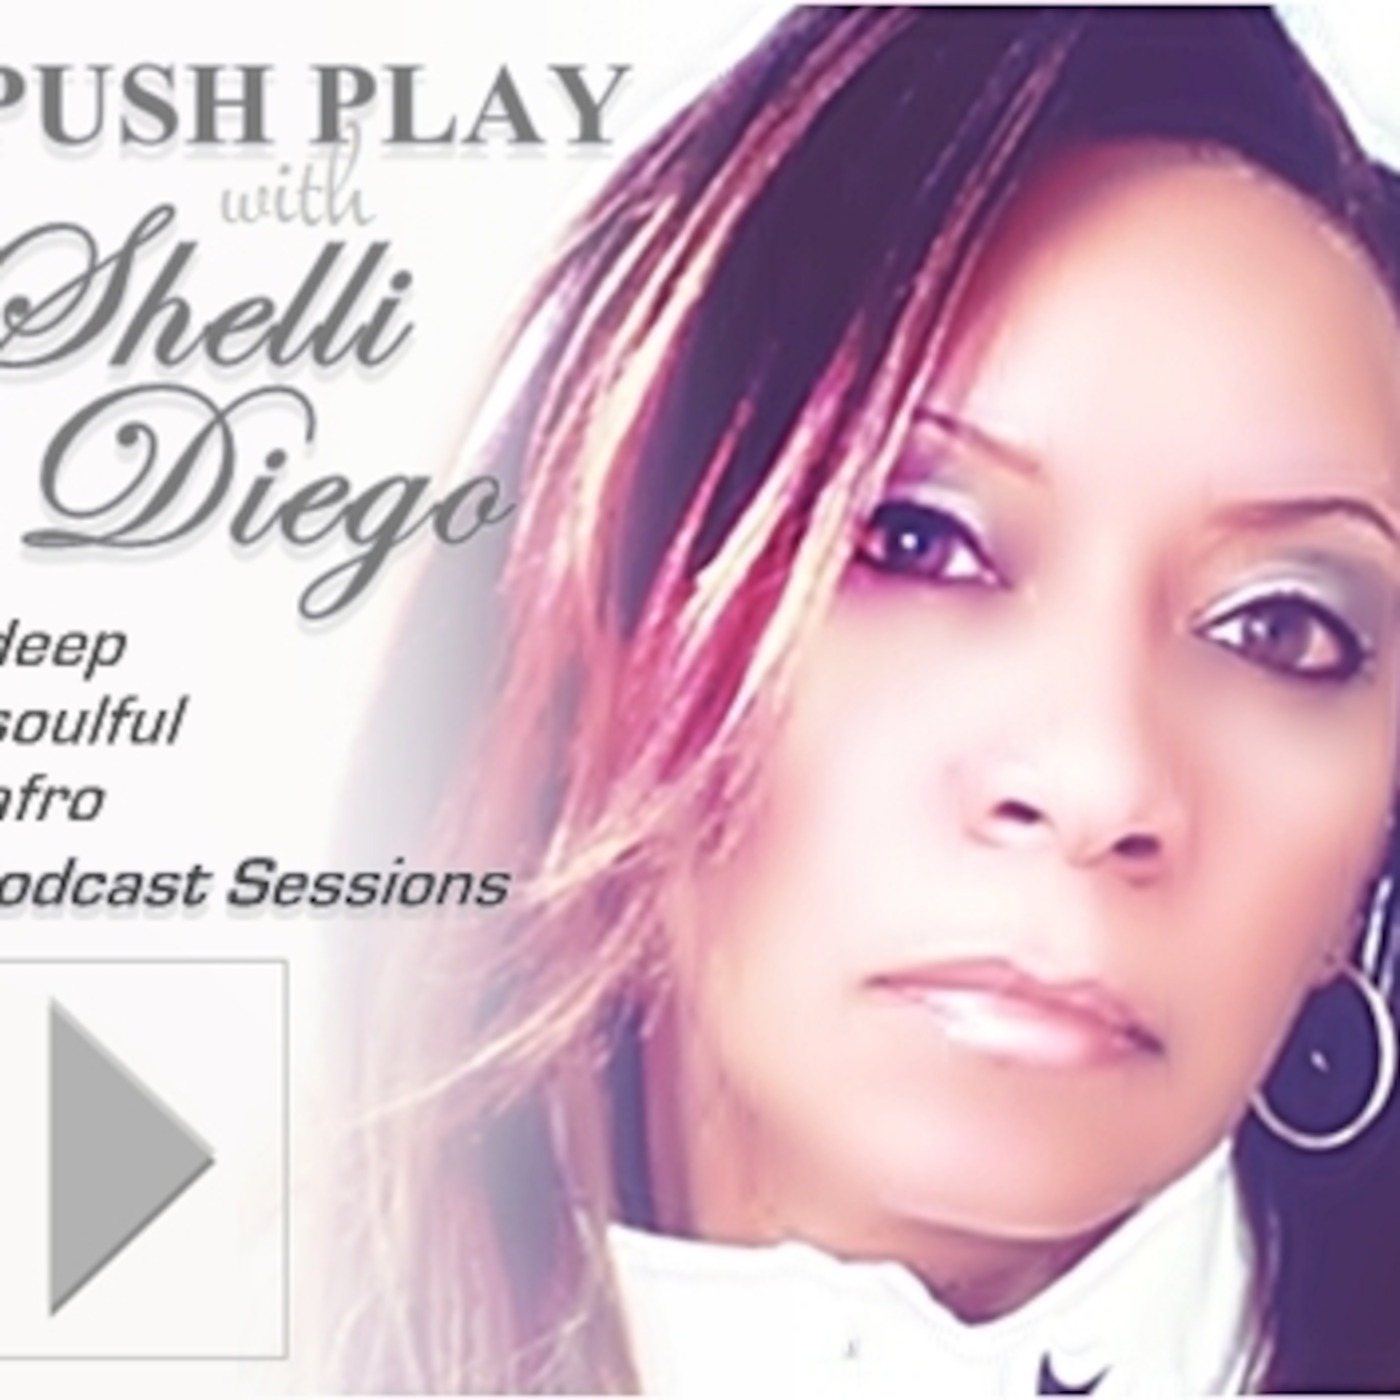 PUSH PLAY with Shelli Diego